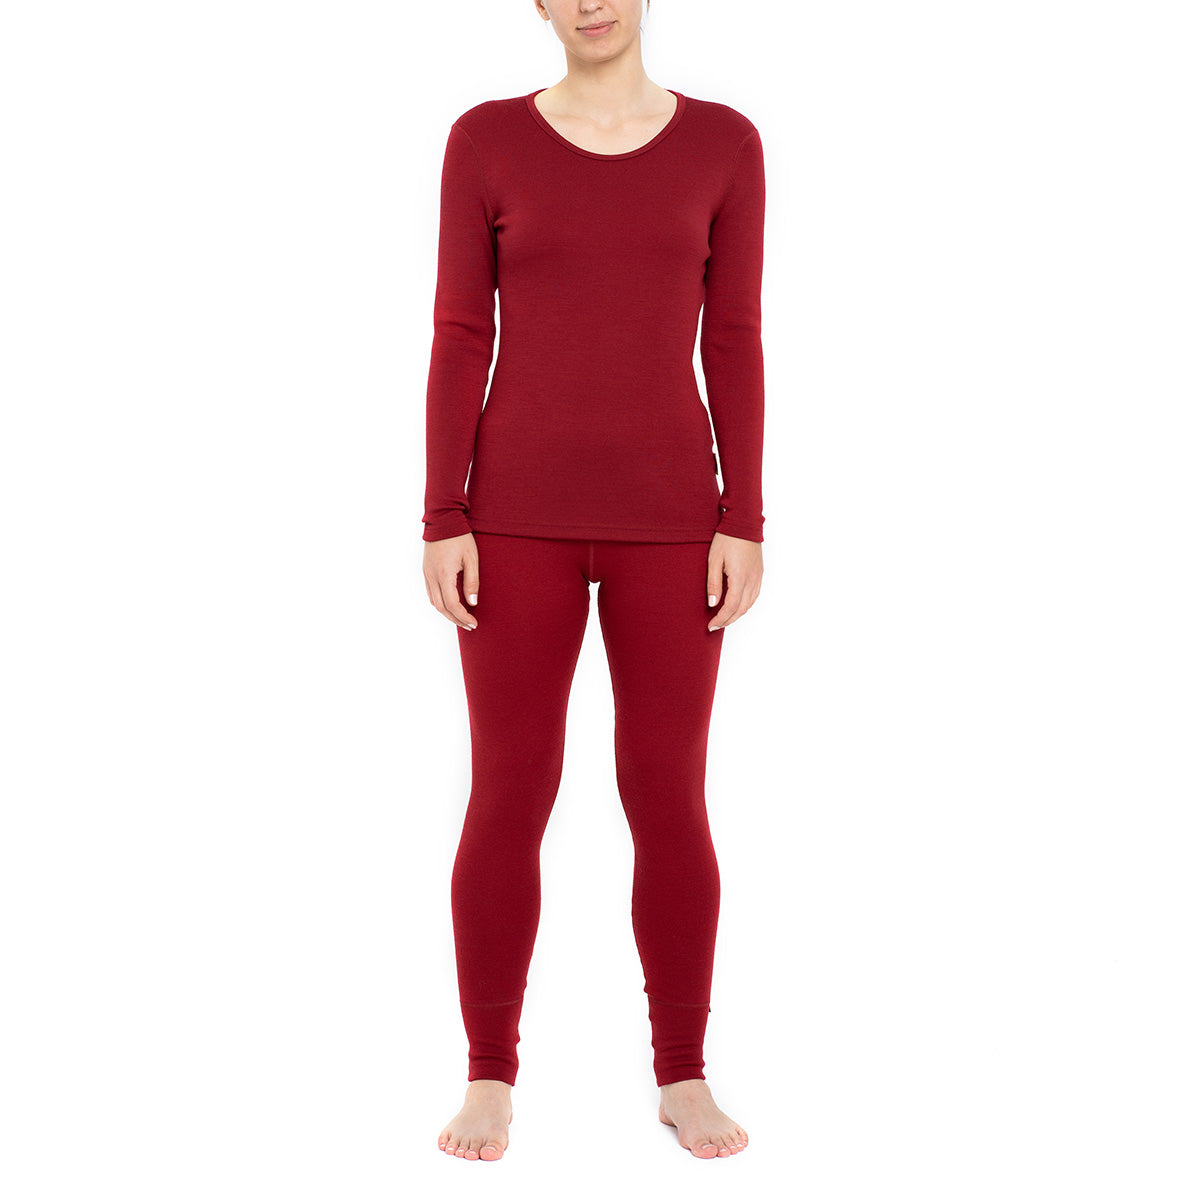 Women's Long Sleeve Set 250gsm Merino Wool Royal Cherry